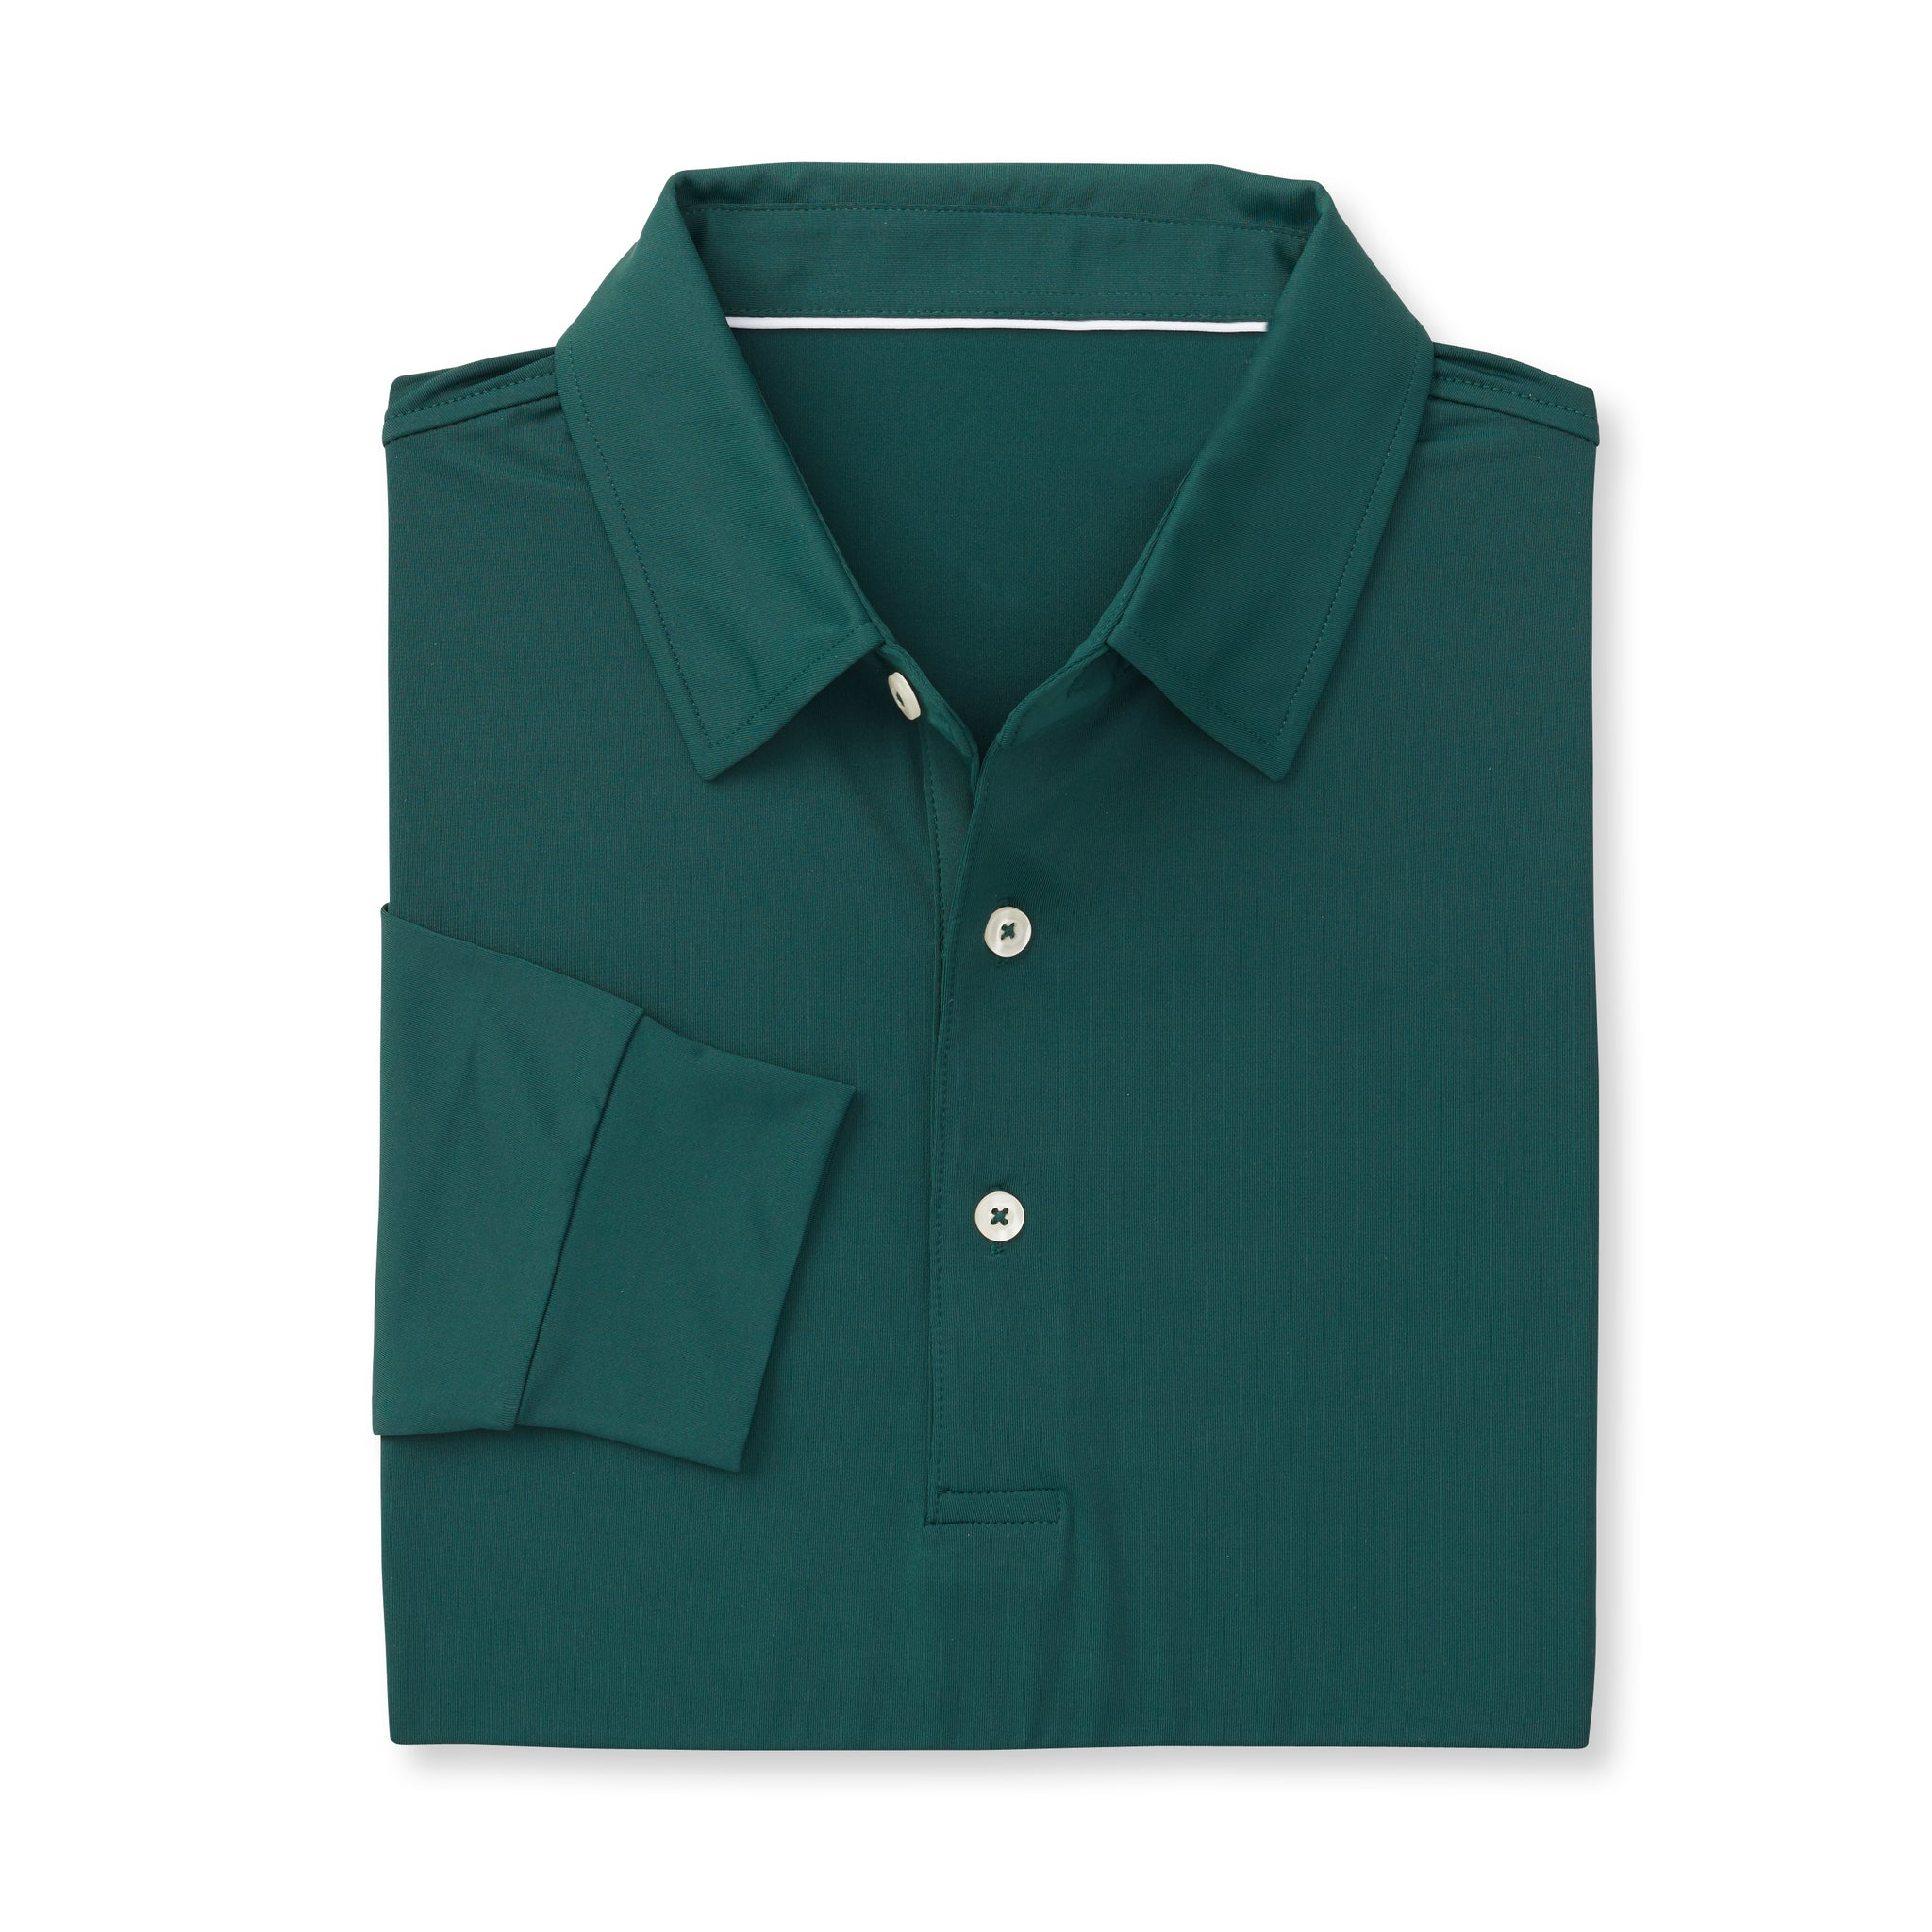 ECOTEC Long Sleeve Polo -Pine IS66001